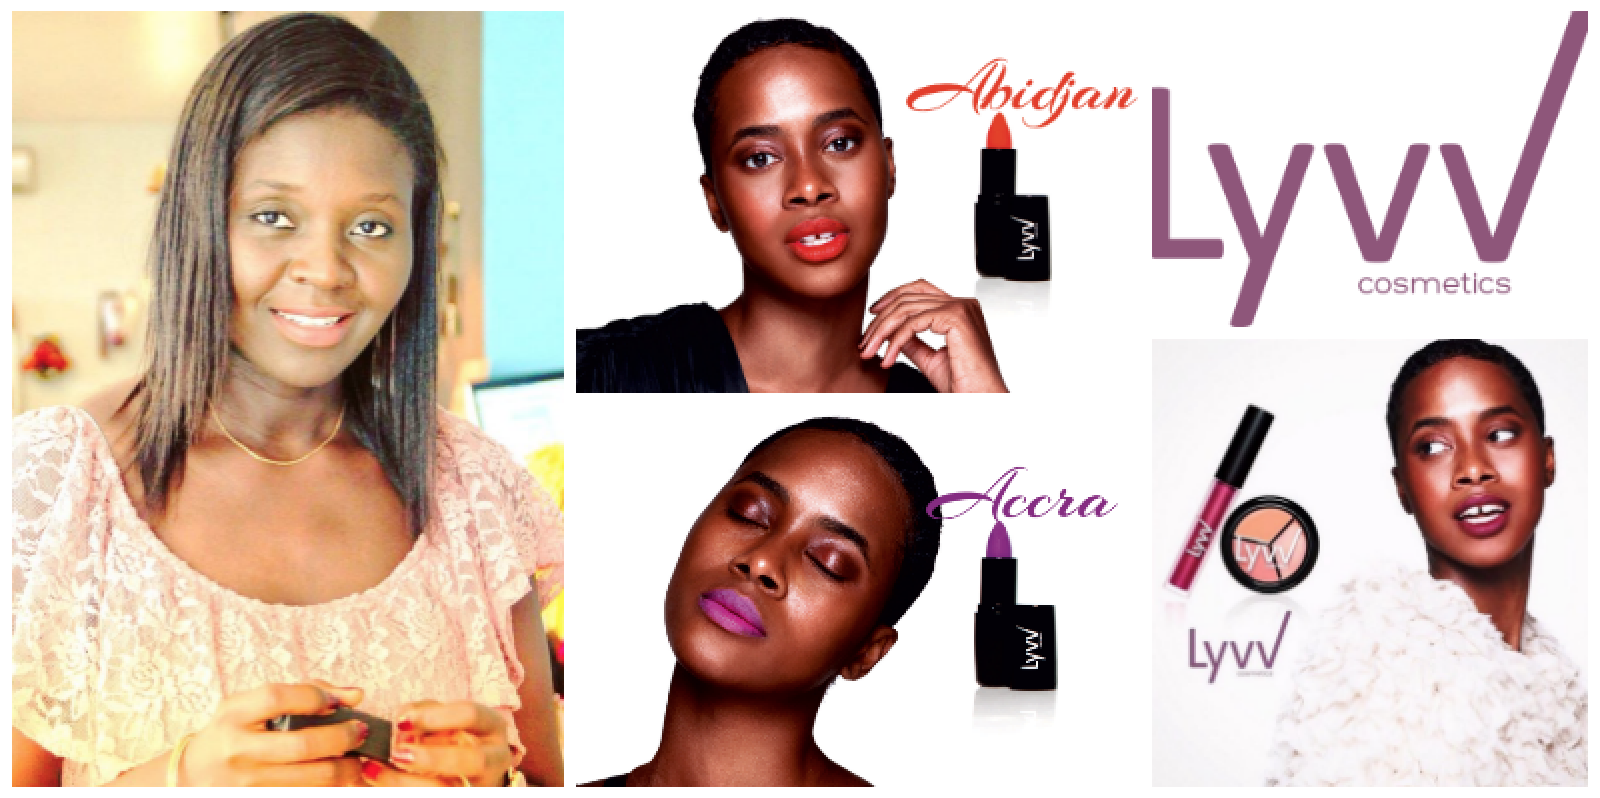 Victorine Sarr, founder of  Lyvv Cosmetics  (Senegal)